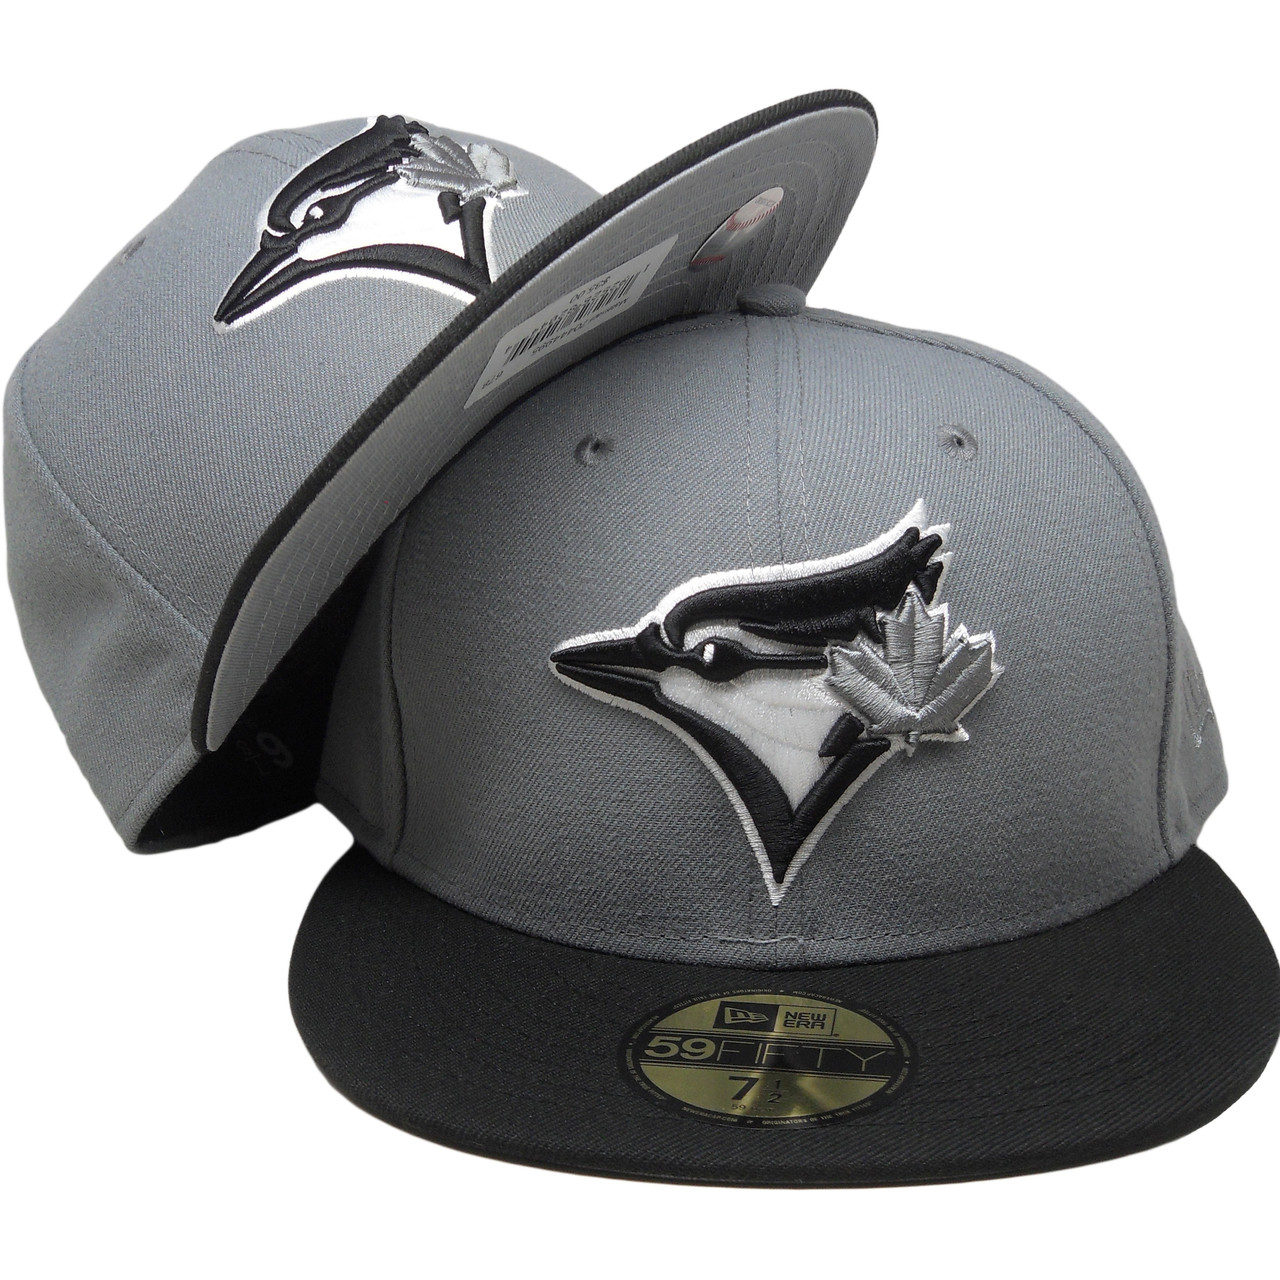 official photos f3686 5d8ea Toronto Blue Jays New Era Custom 59Fifty Fitted Hat - Storm Gray, Black,  White - ECapsUnlimited.com